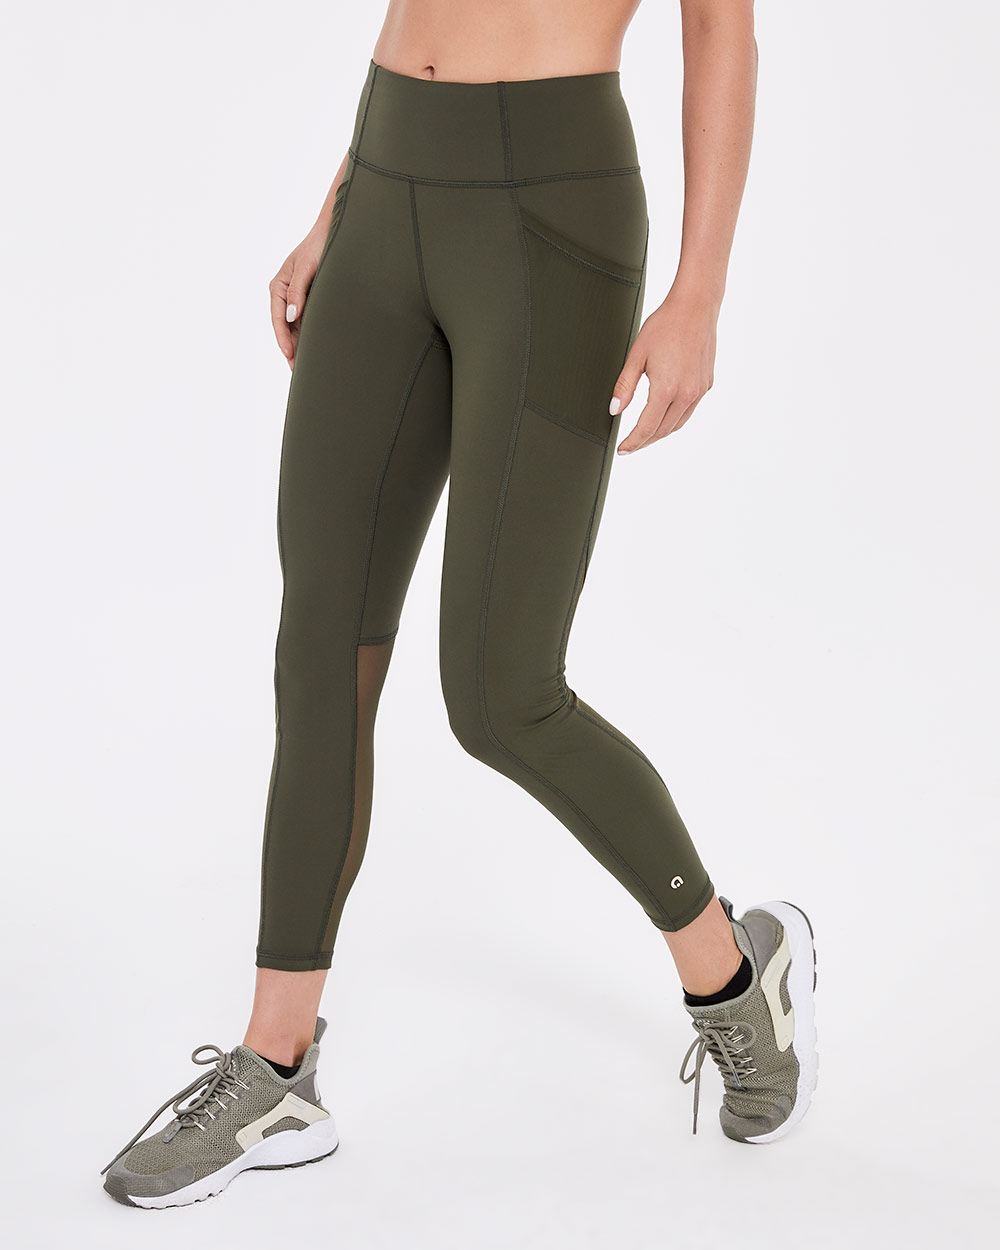 Hyba Levity Legging with Mesh